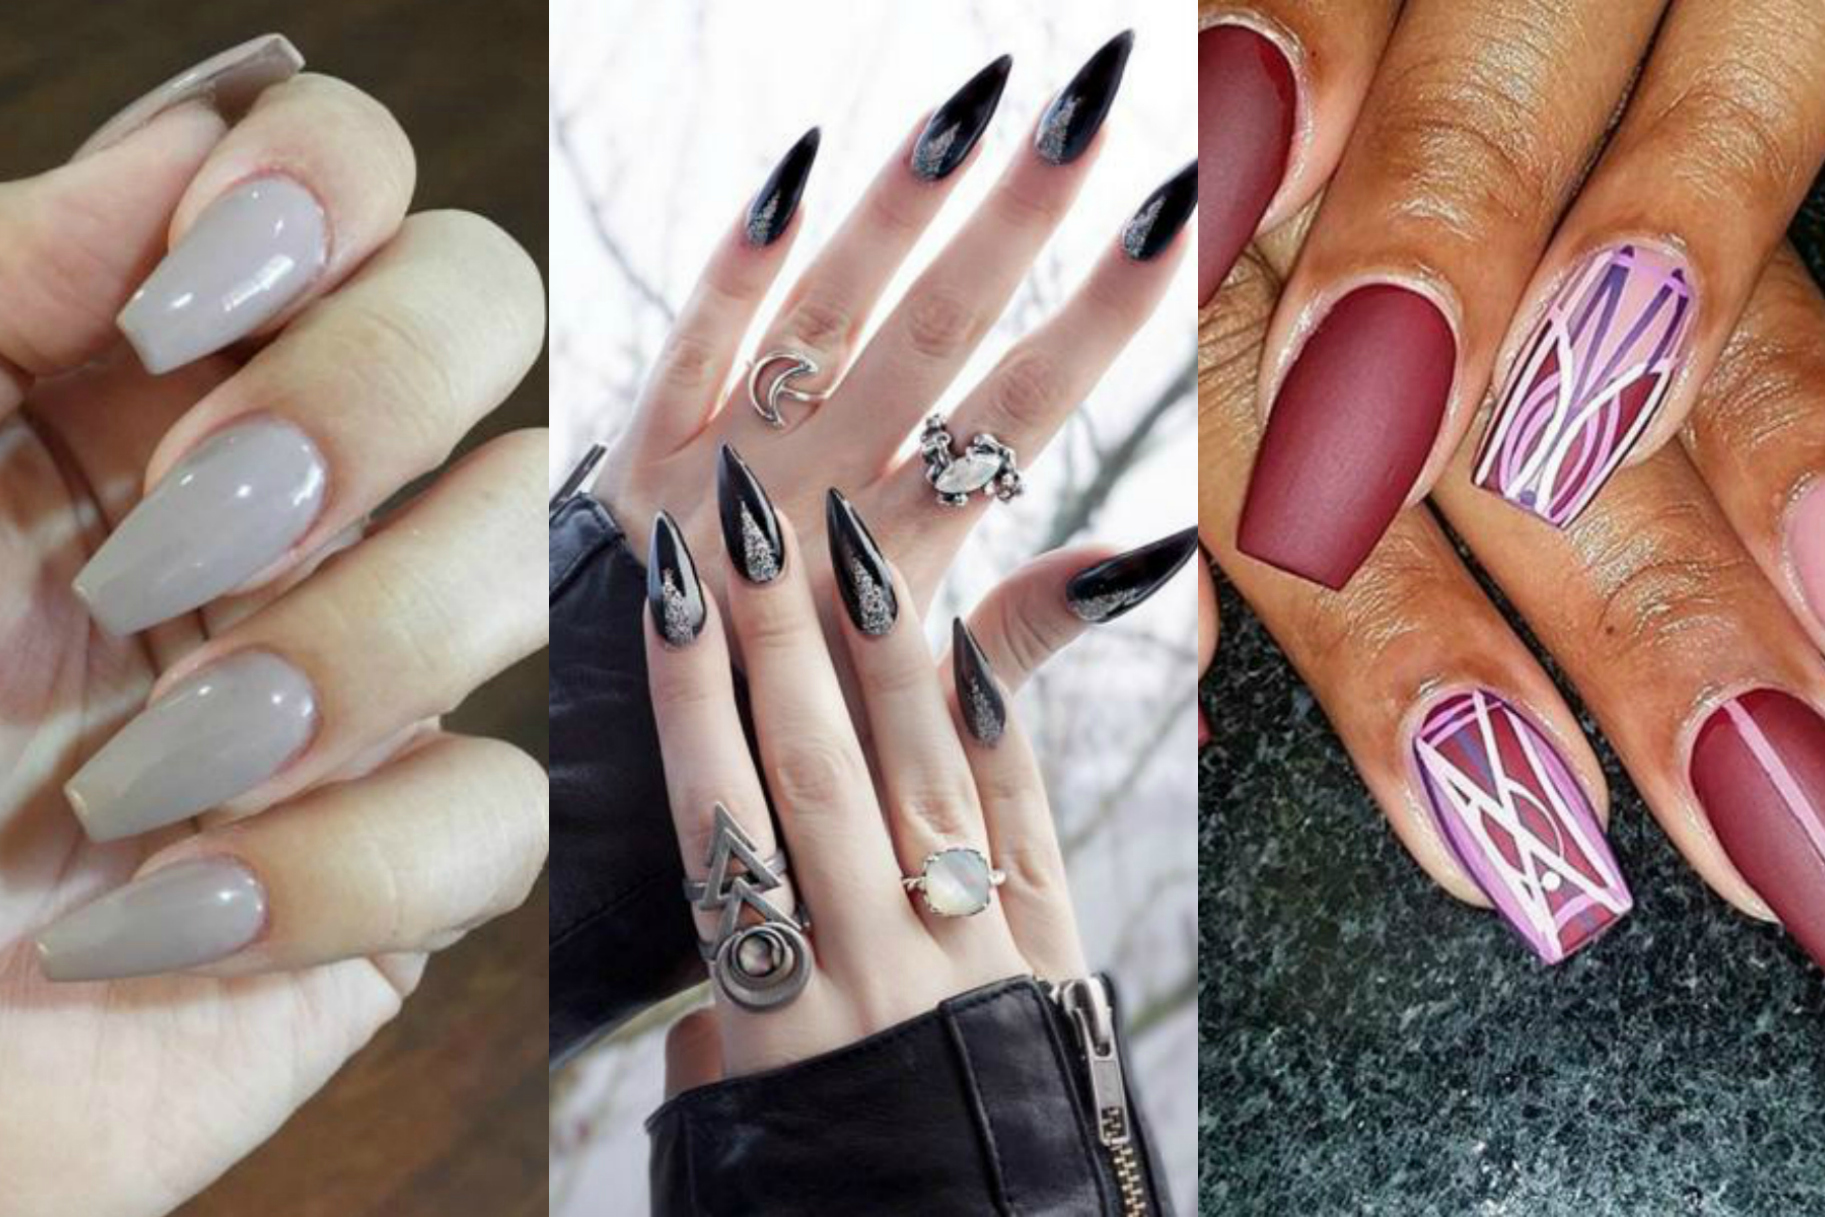 6 Nail Trends To Fall In Love With In 2016 | Very Real